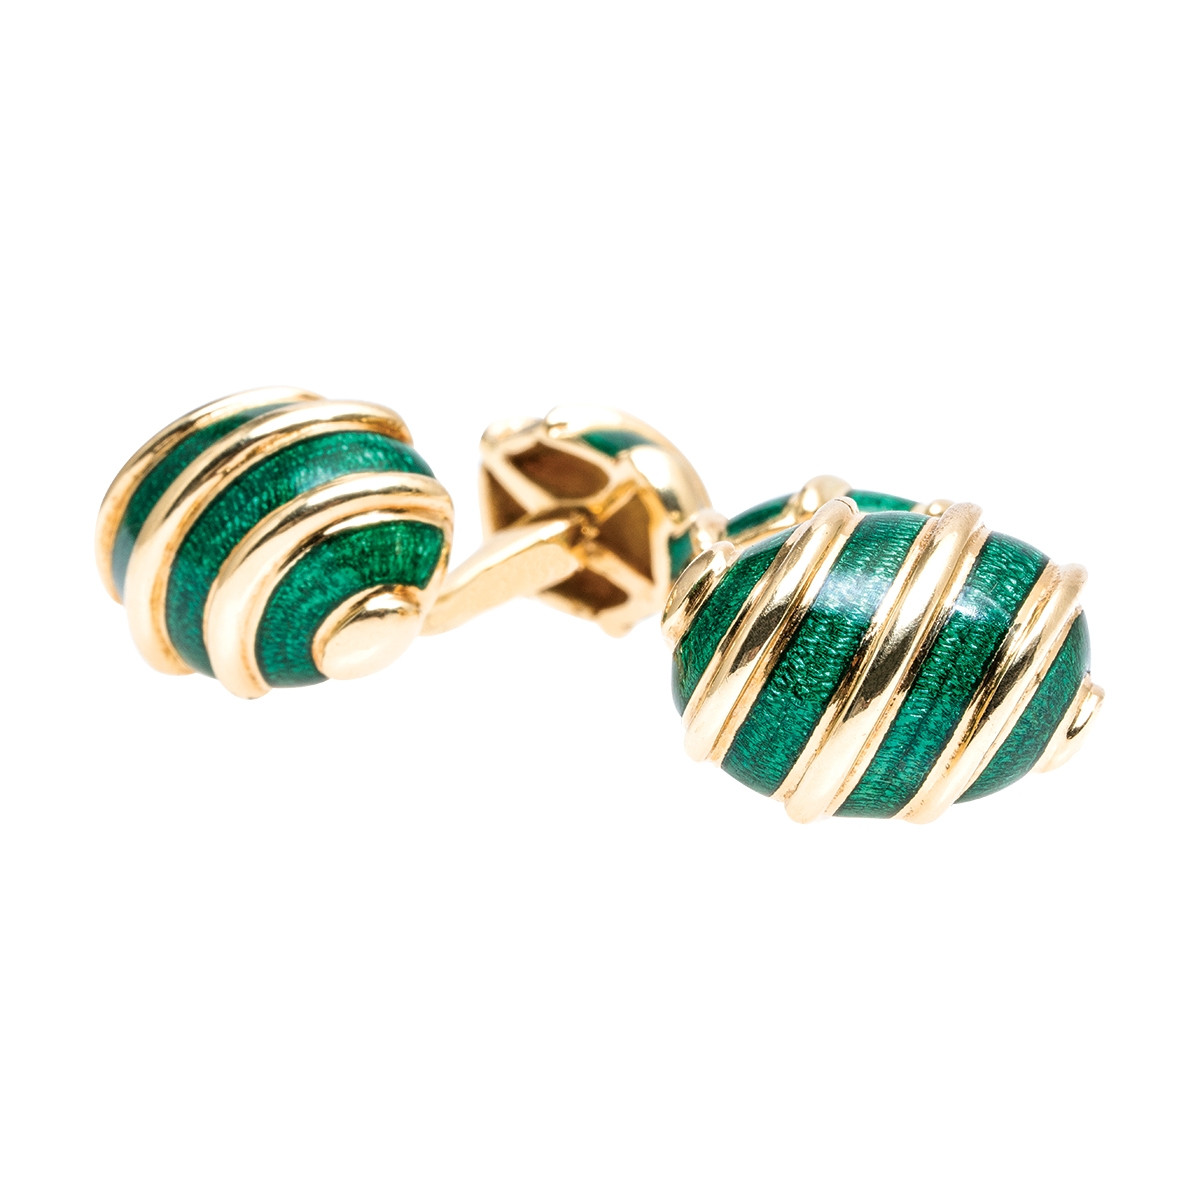 Vintage Tiffany & Co. Jean Schlumberger Green Cufflinks